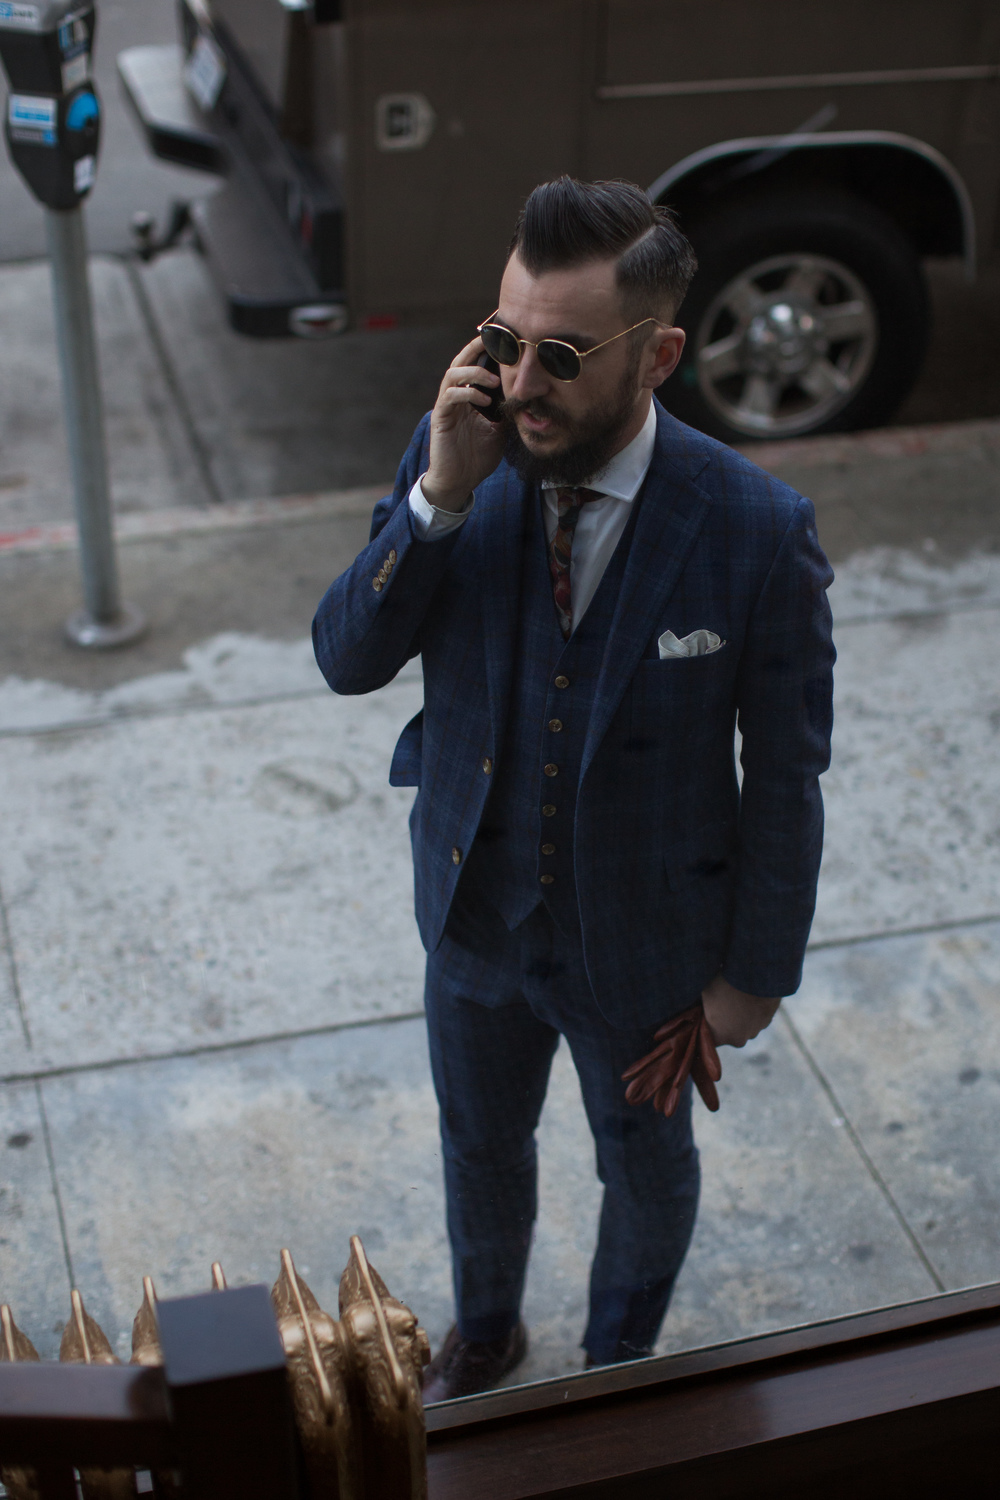 5 Places Where A Custom Suit Will Make You Stand Out